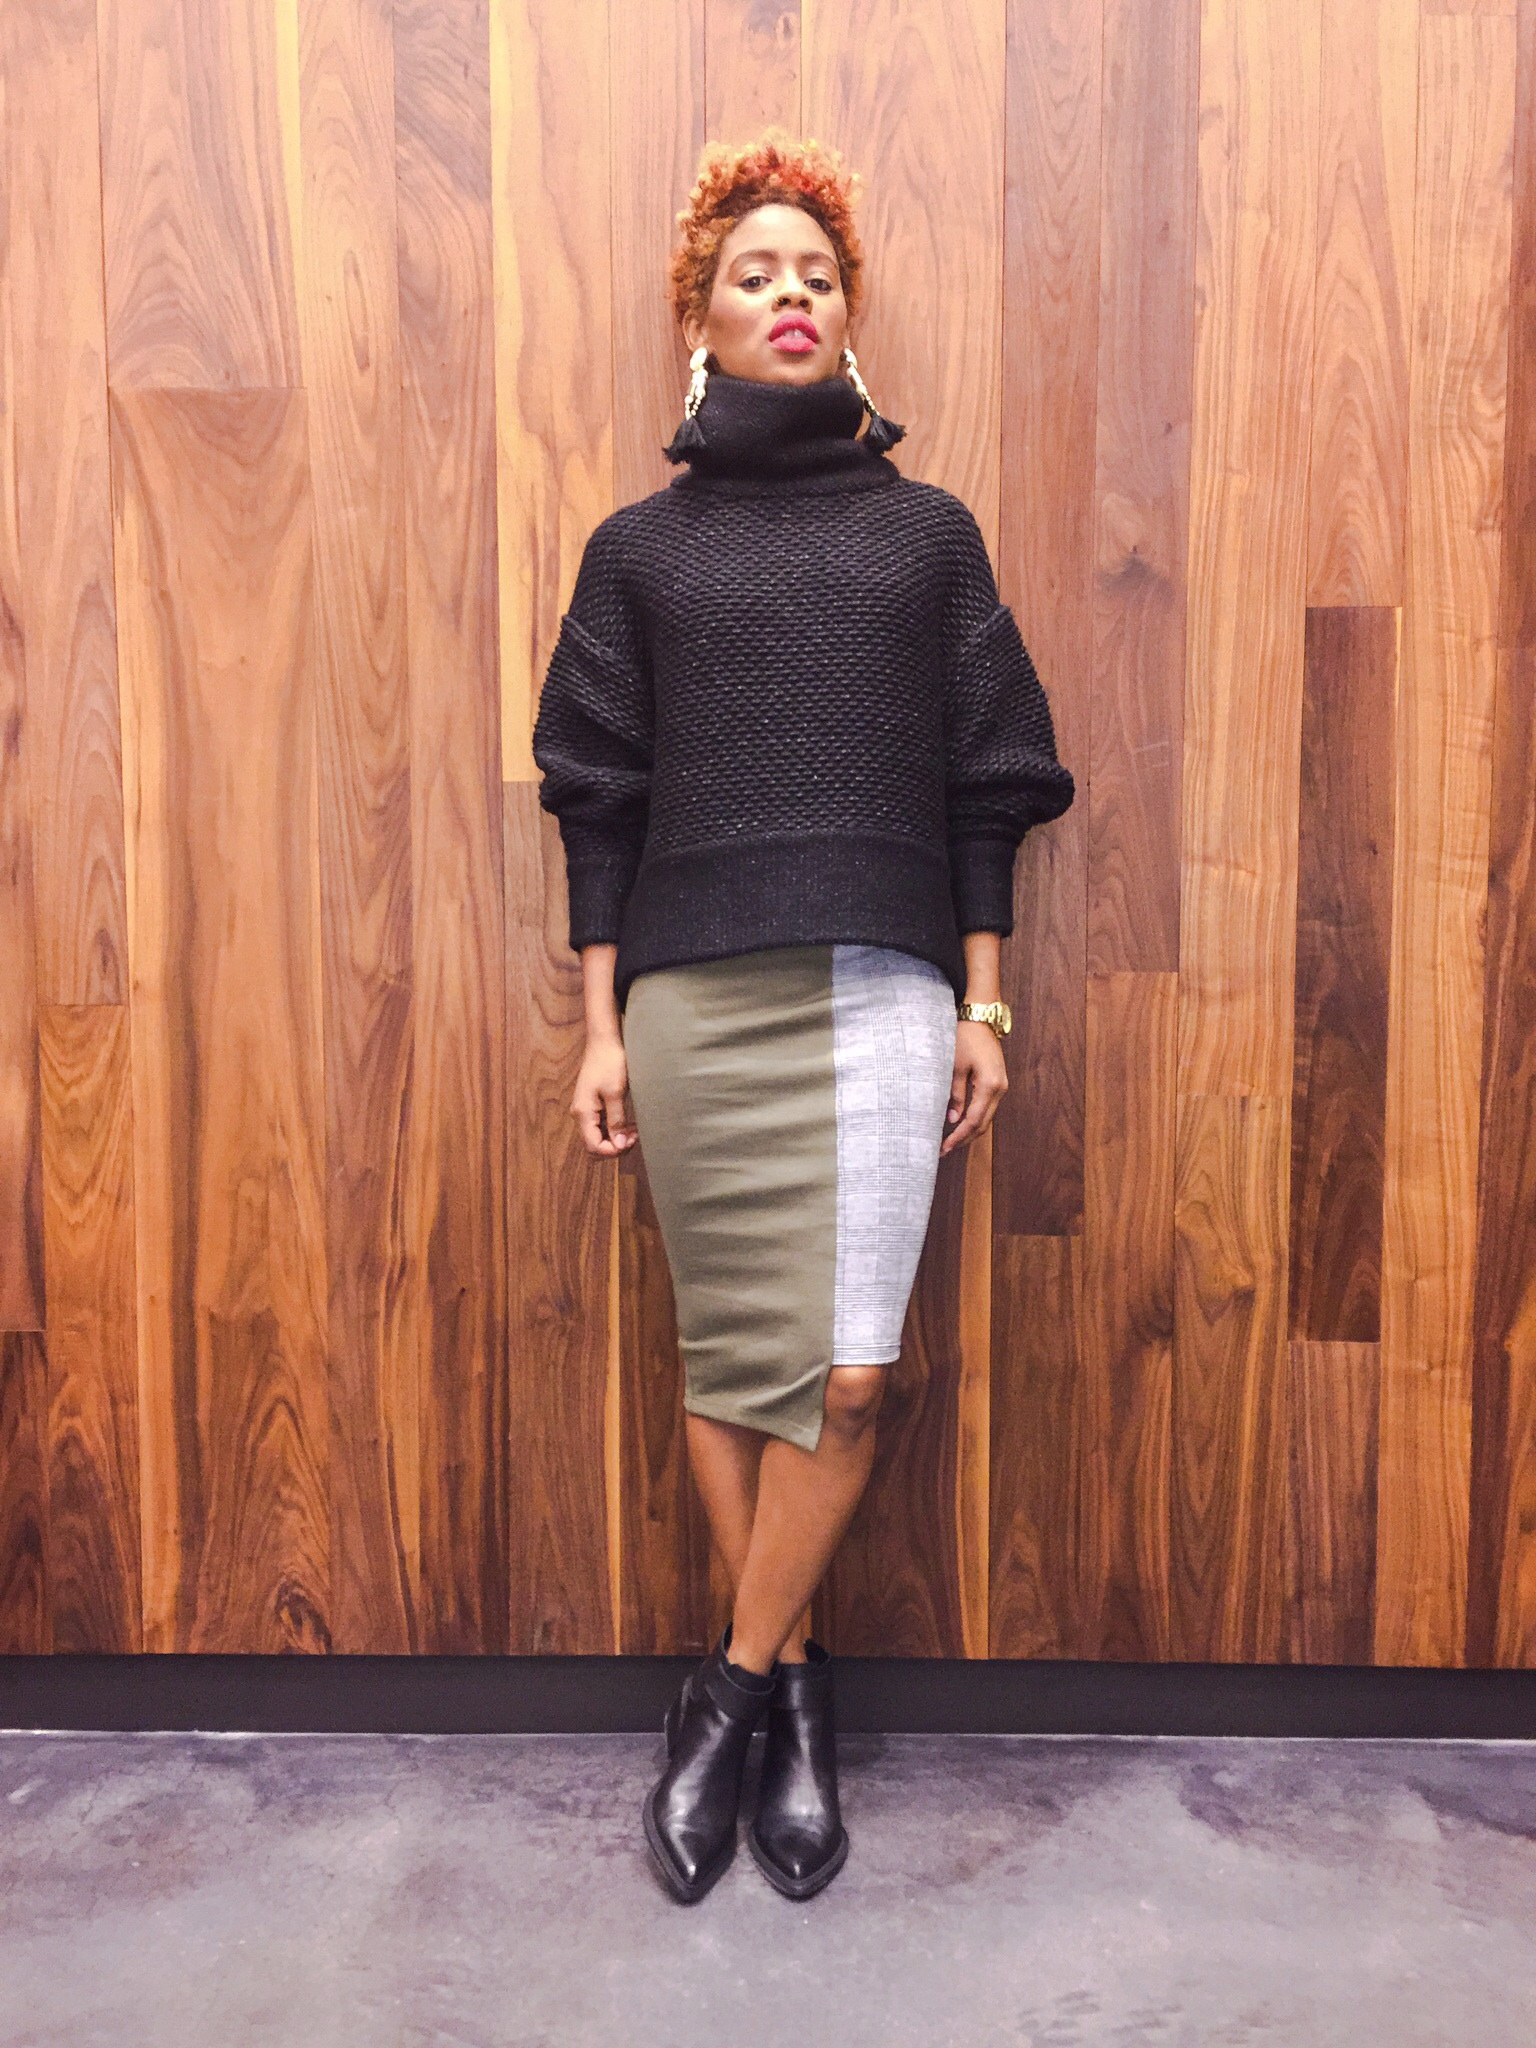 Something By Sonjia skirt, Helmut Lang Sweater and shoes, Michael Kors watch, H&M earrings and Sephora lipstick.